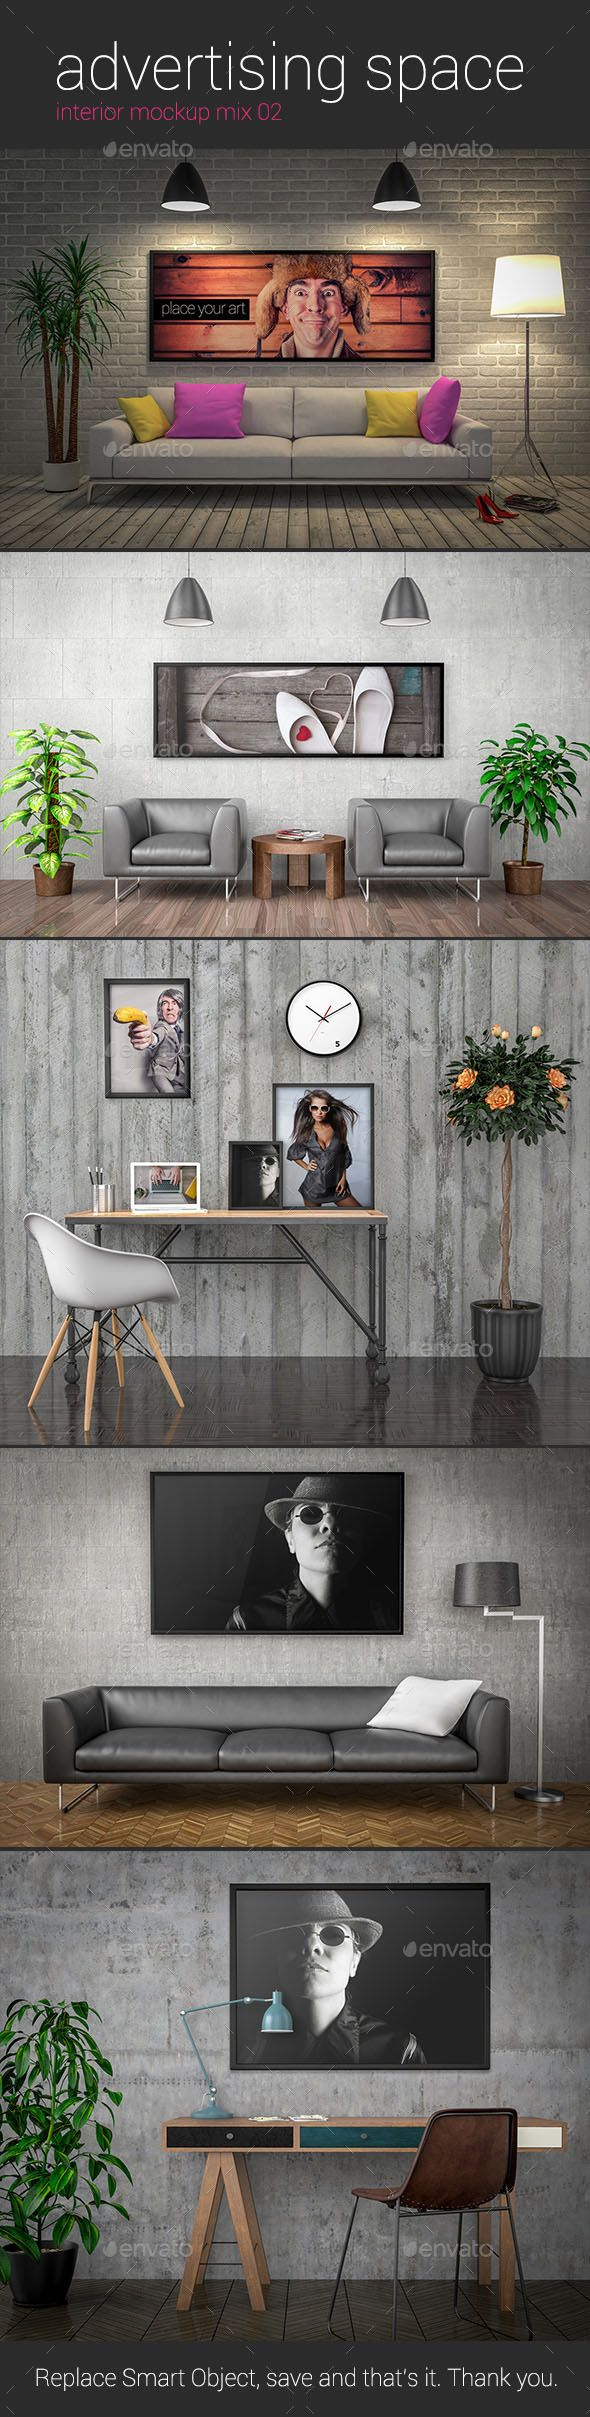 Advertising Space Interior Mockup Mix 02 — Photoshop PSD #couch #photo • Available here → https://graphicriver.net/item/advertising-space-interior-mockup-mix-02/12210125?ref=pxcr